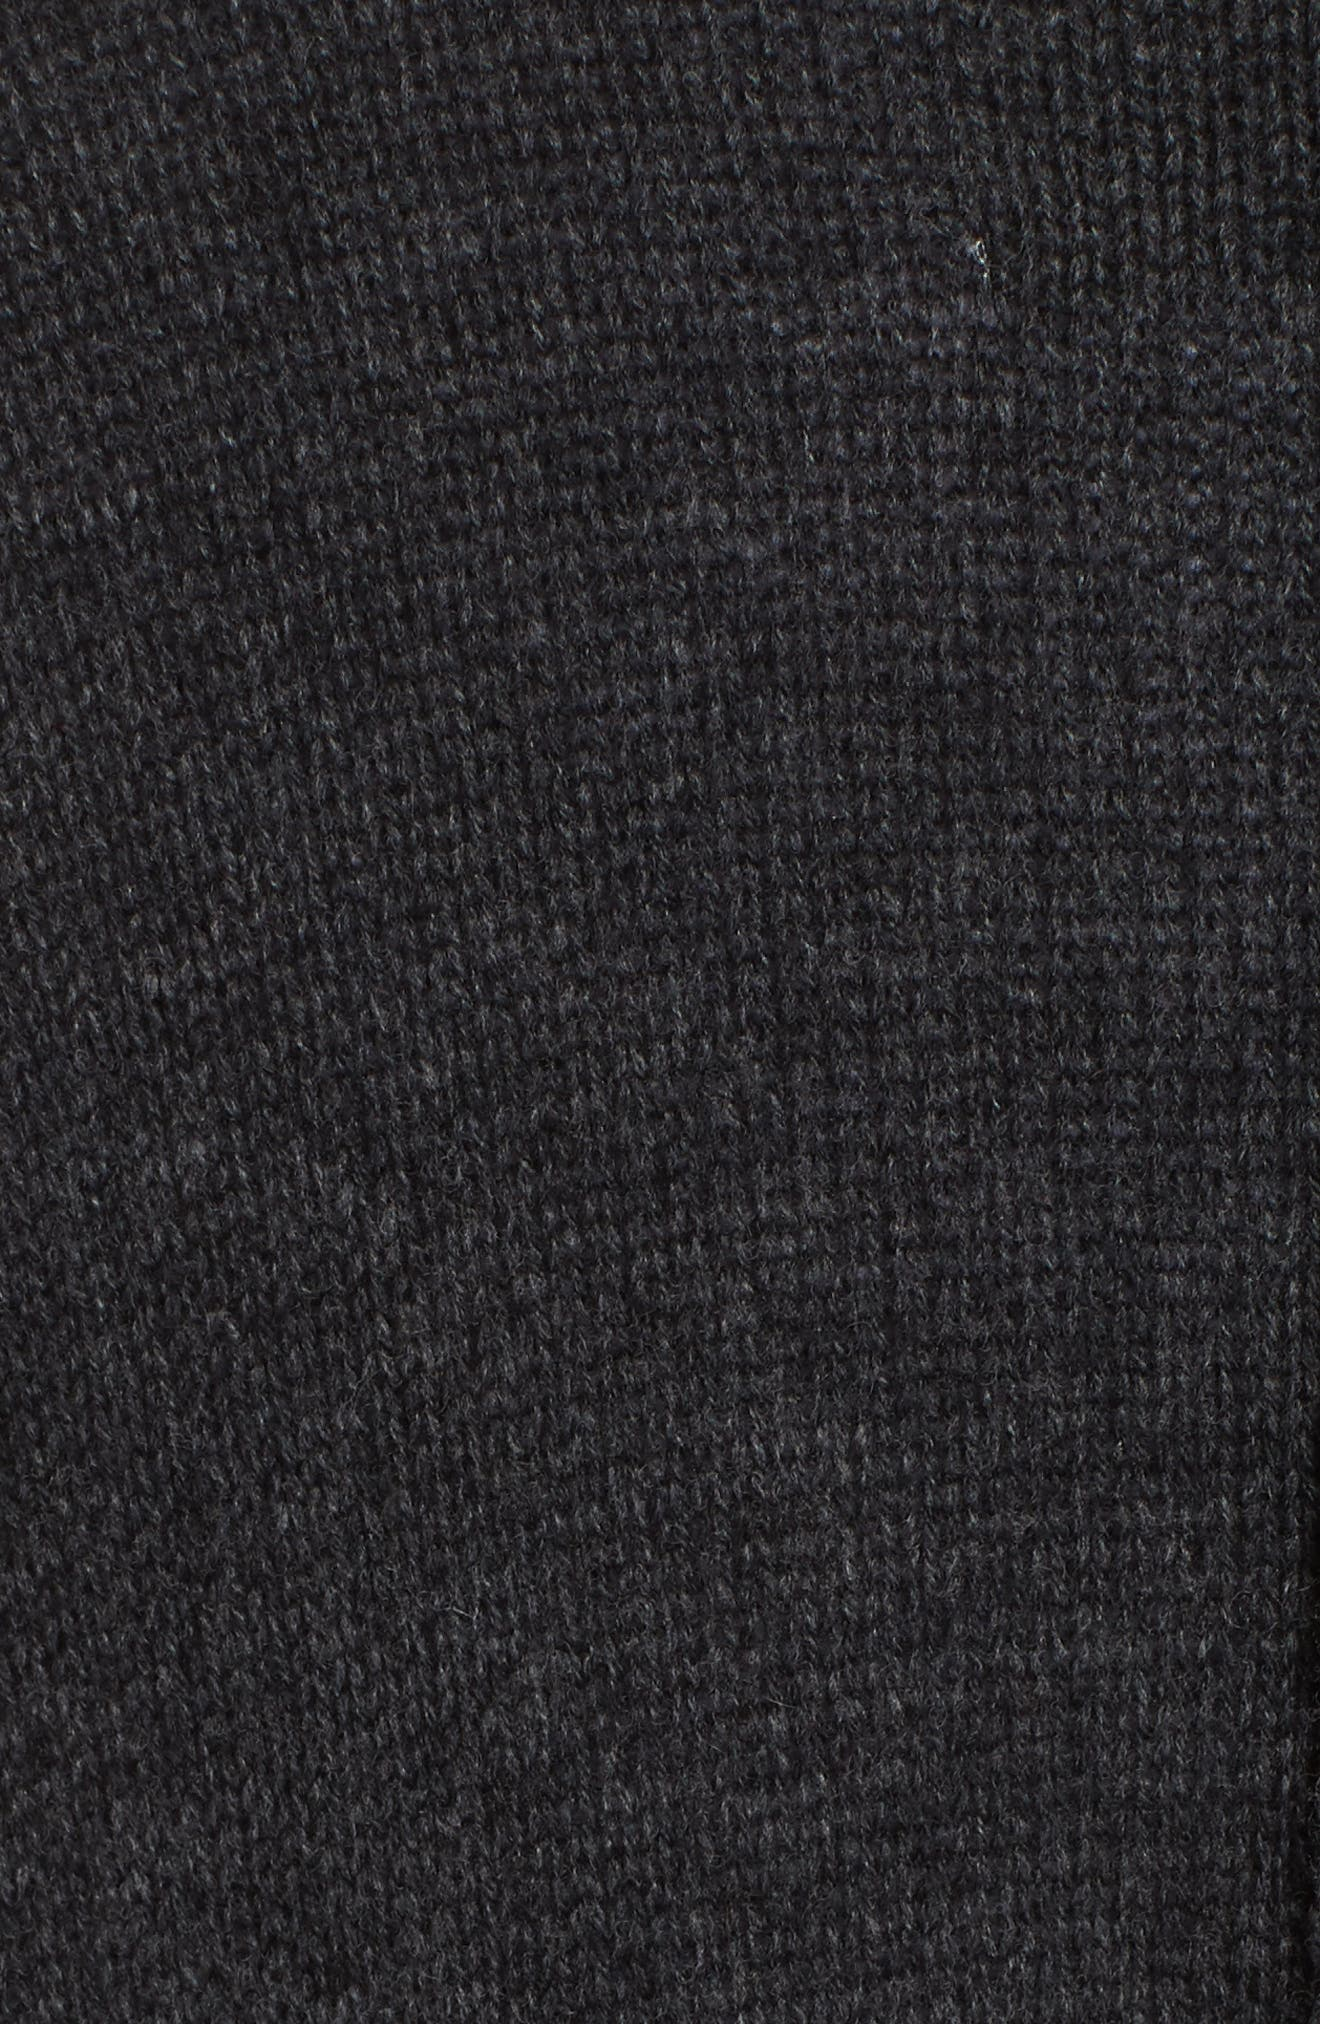 Orial Wool Cashmere Duster,                             Alternate thumbnail 5, color,                             CHARCOAL